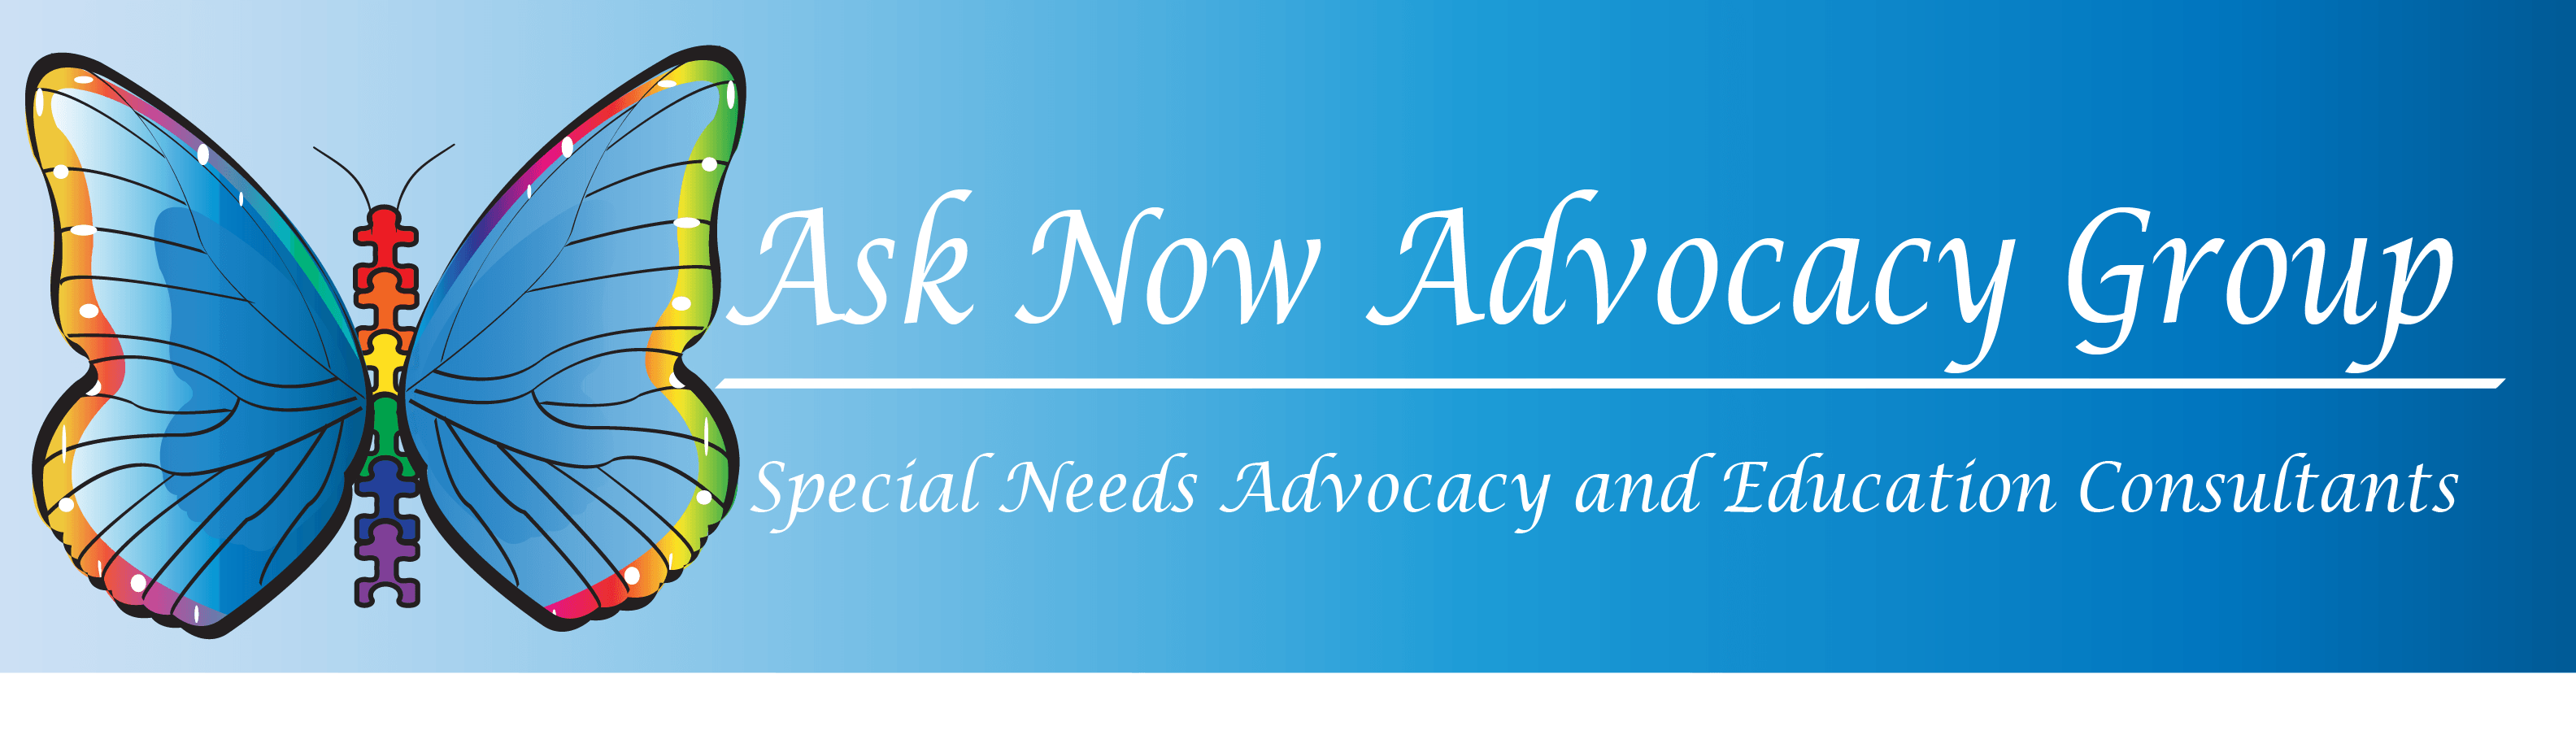 Ask Now Advocacy Group